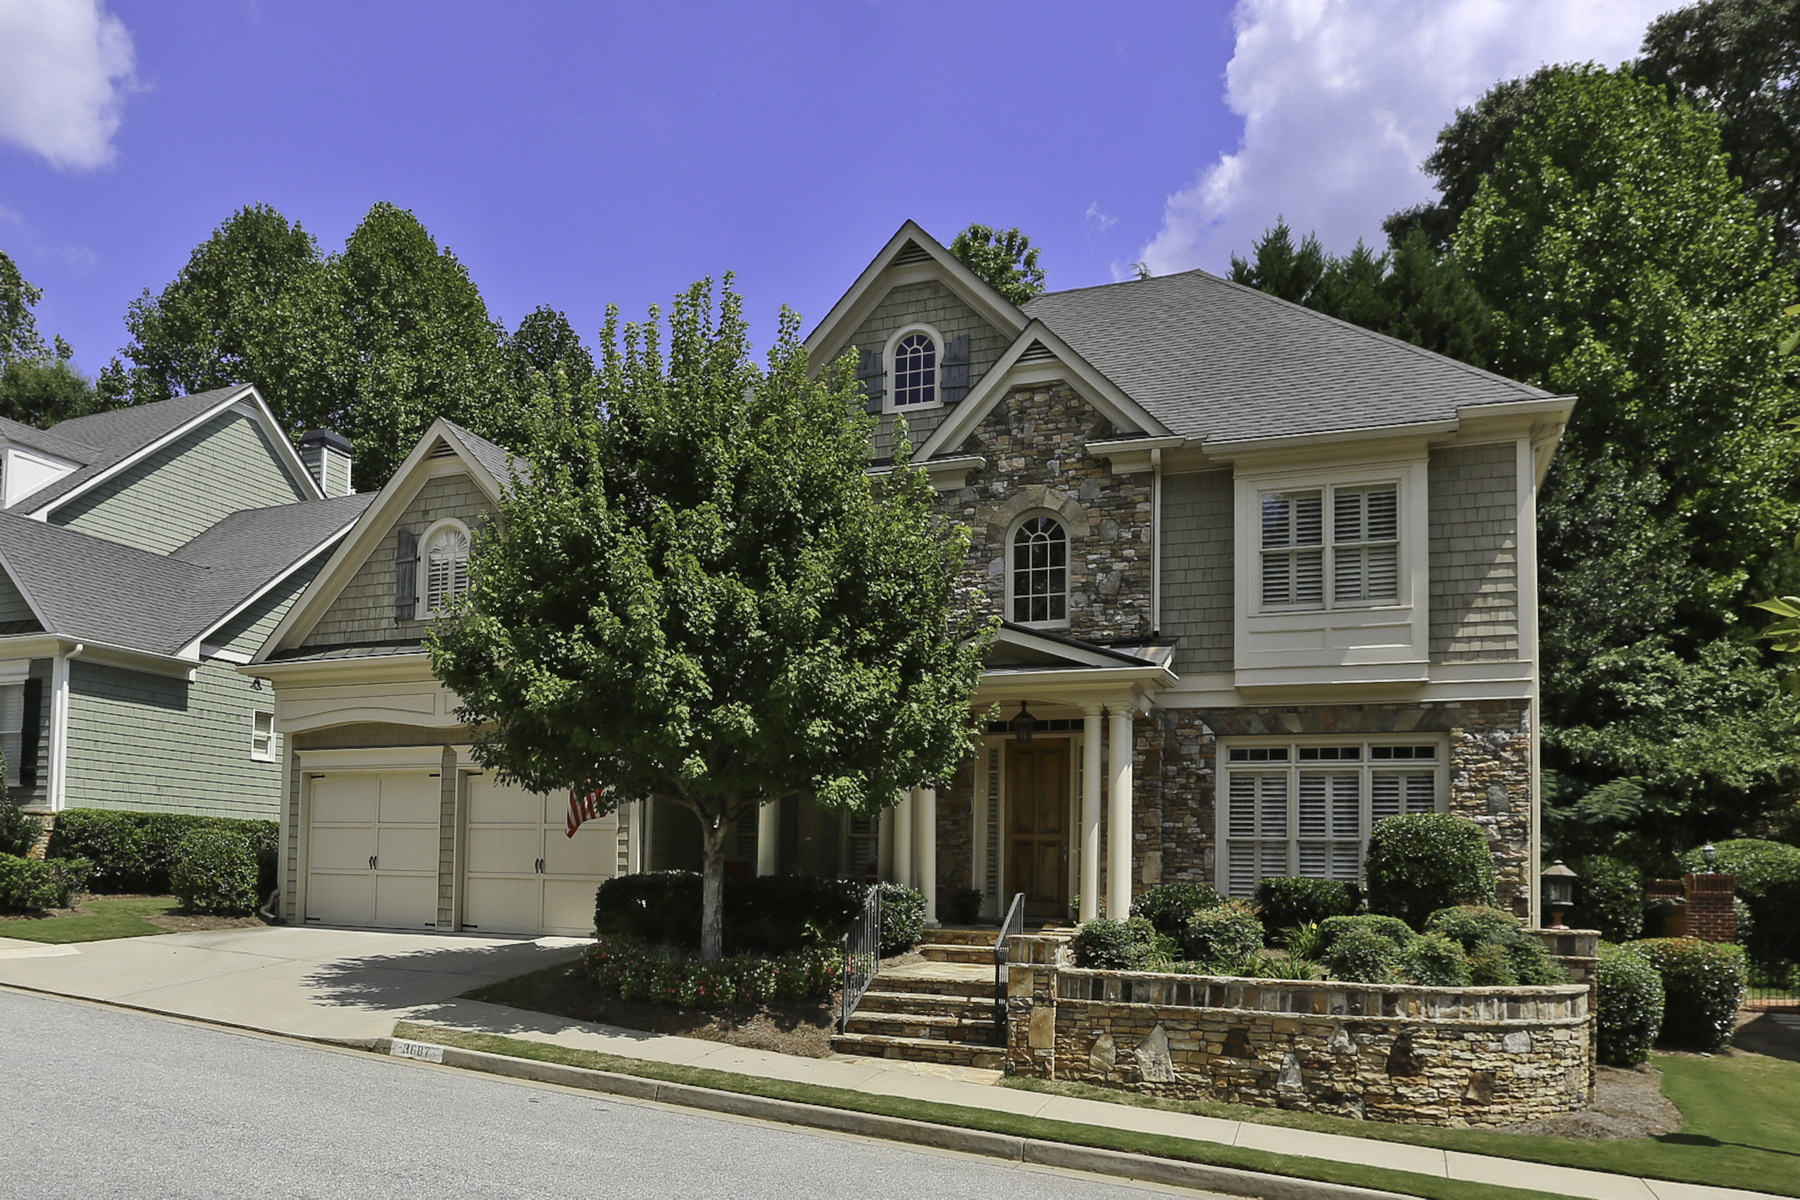 独户住宅 为 销售 在 An Elegant Executive Home In A Storybook Setting 3687 Canyon Ridge Court NE 亚特兰大, 乔治亚州, 30319 美国